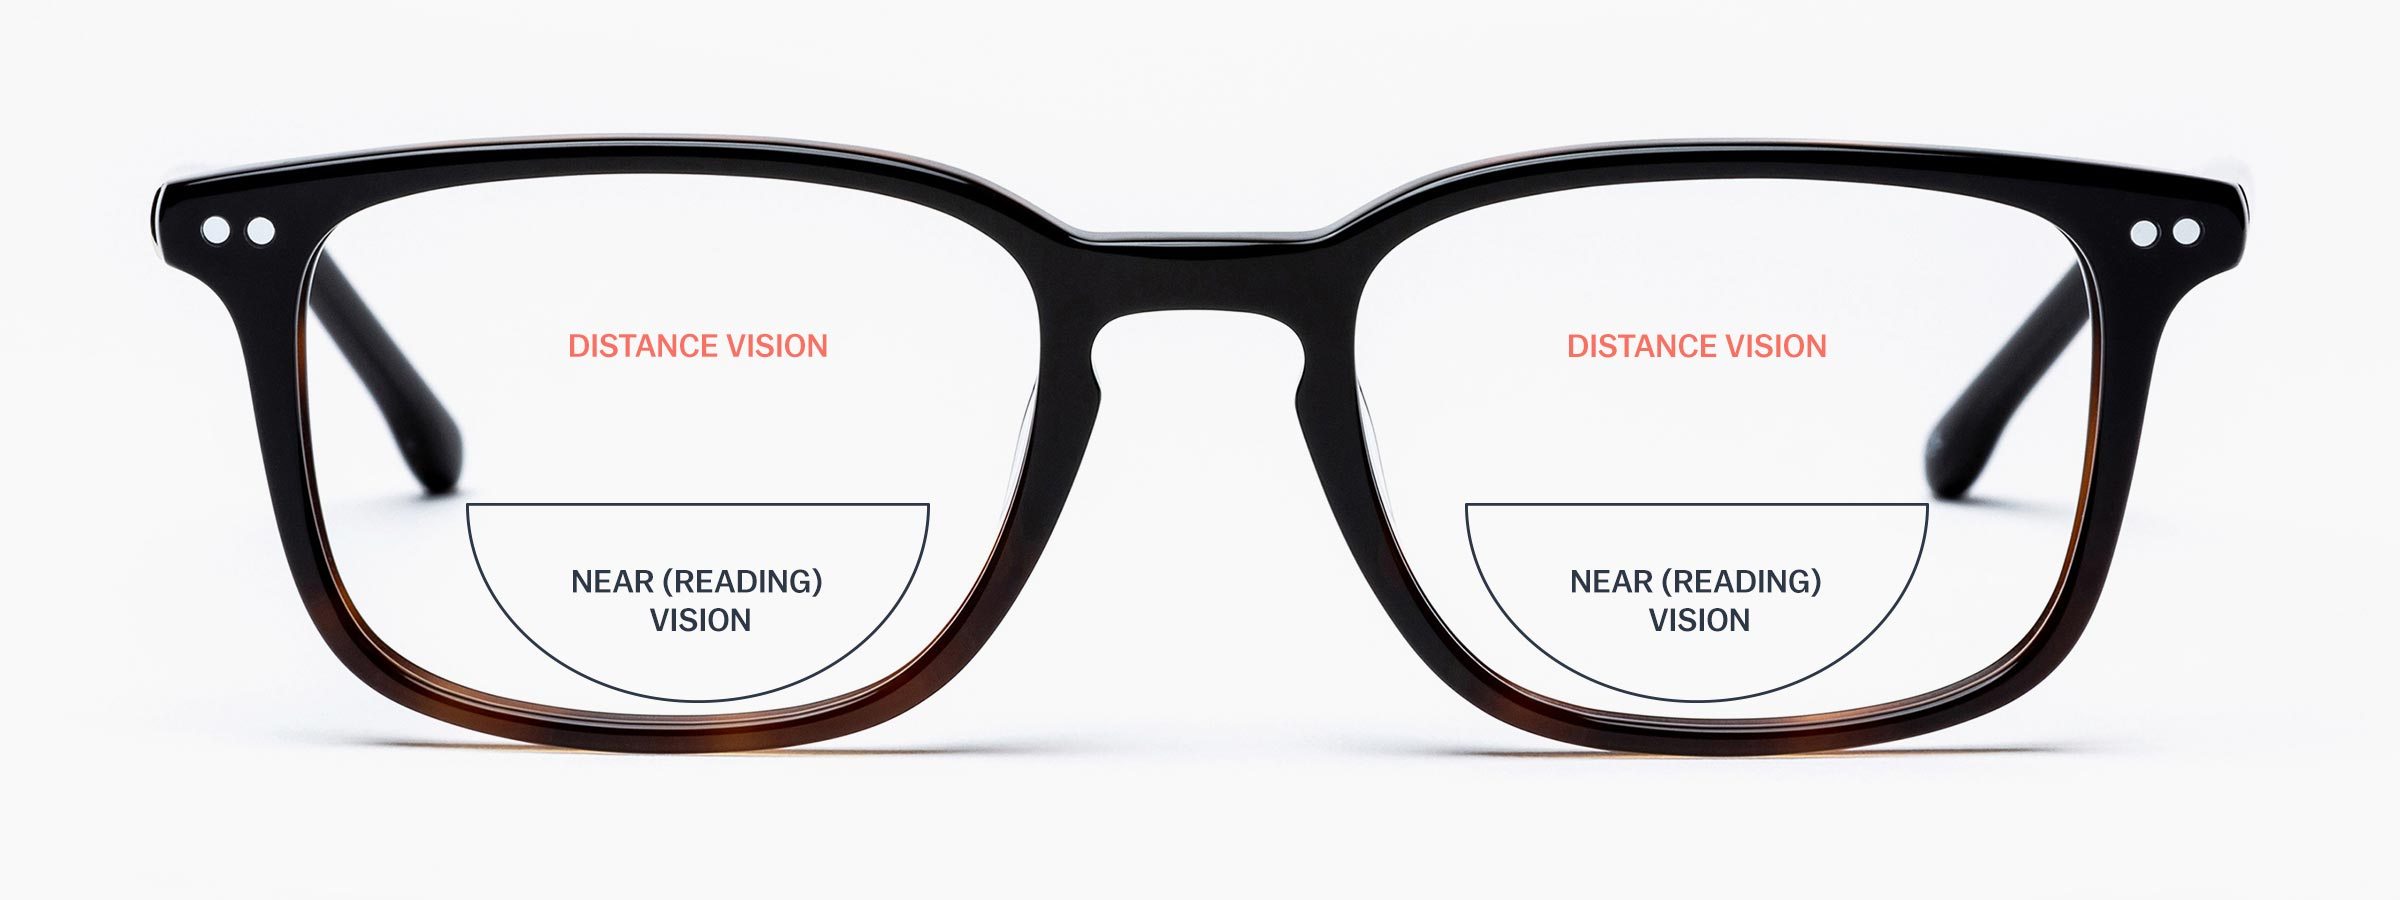 A pair of bifocal glasses with the sections for different distances highlighted